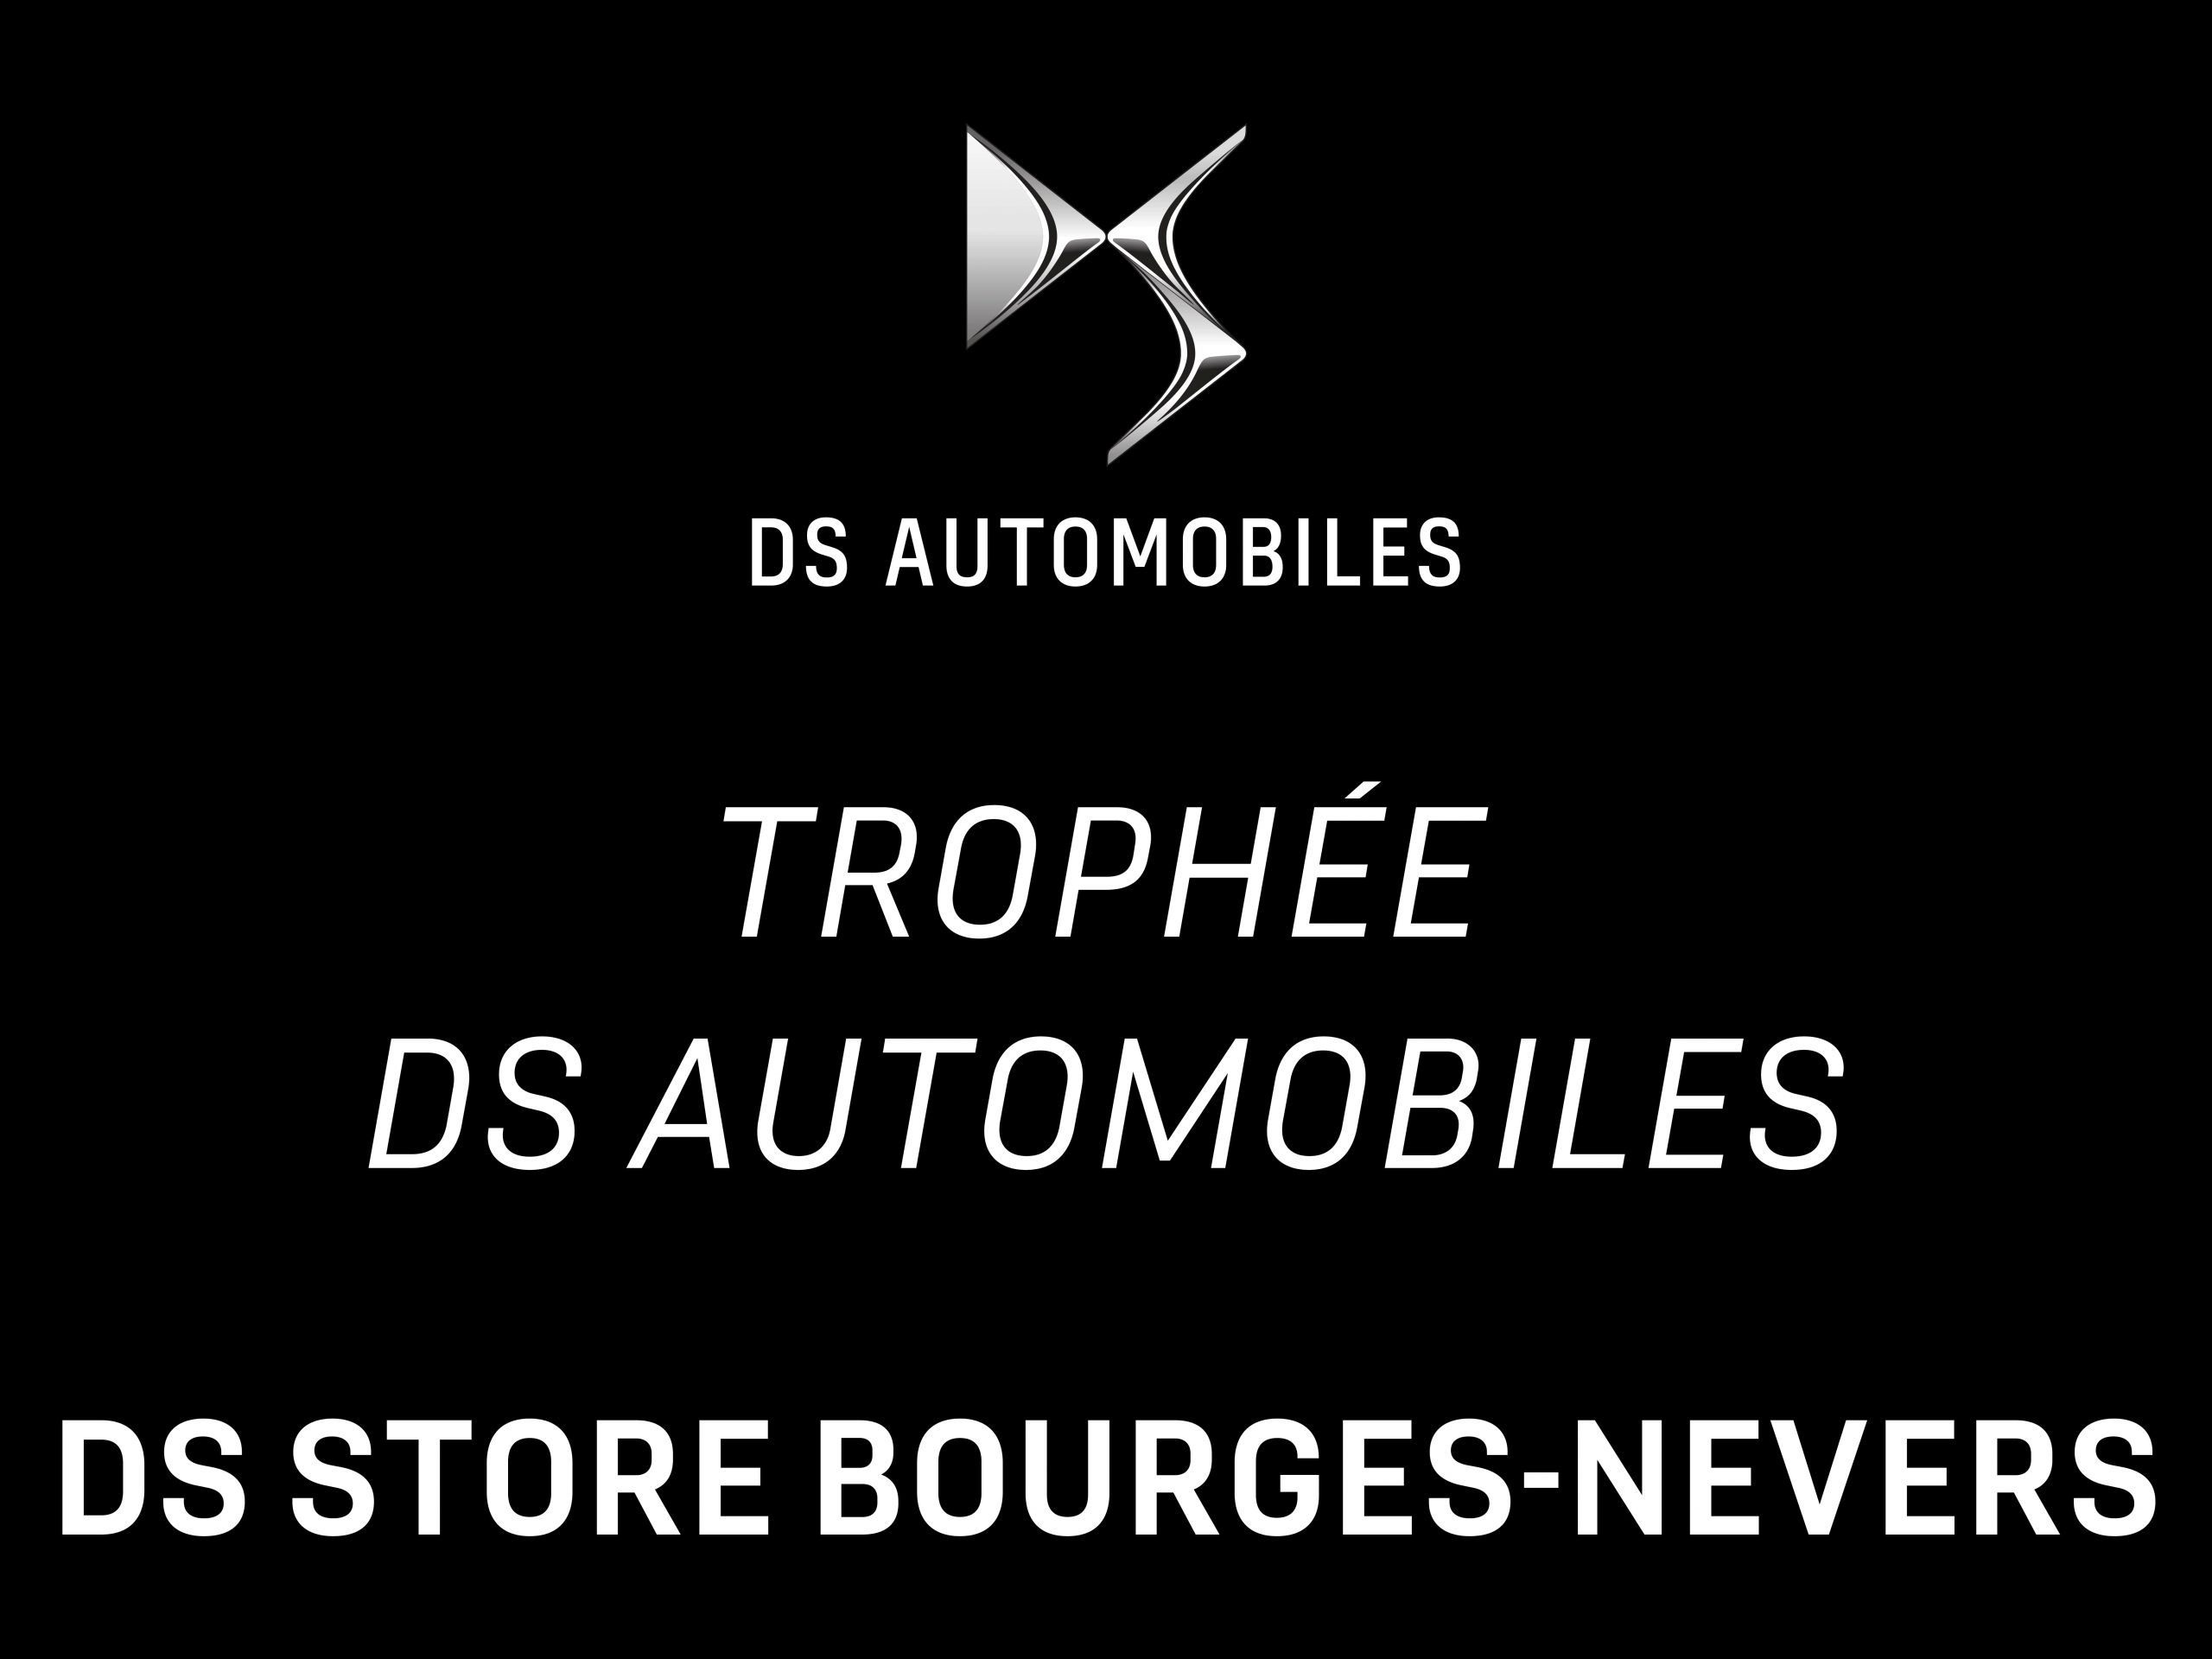 DS STORE BOURGES - NEVERS